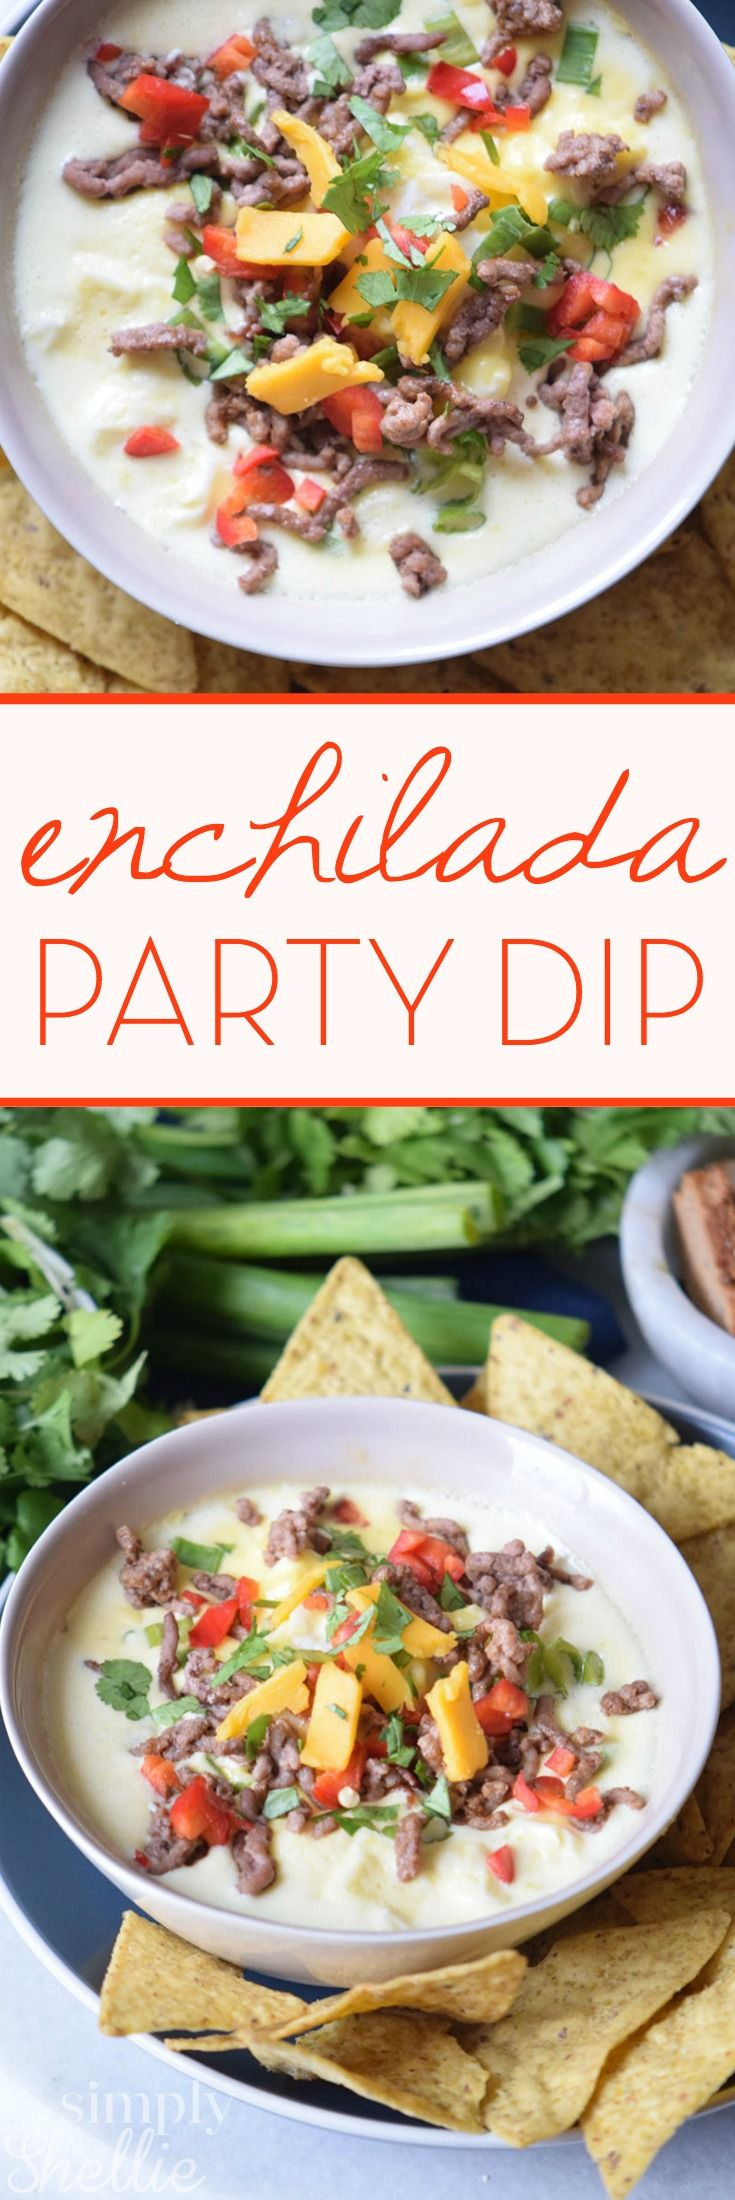 This Beef Enchilada Dip is a Tex Mex twist for your next party dip. It's a…